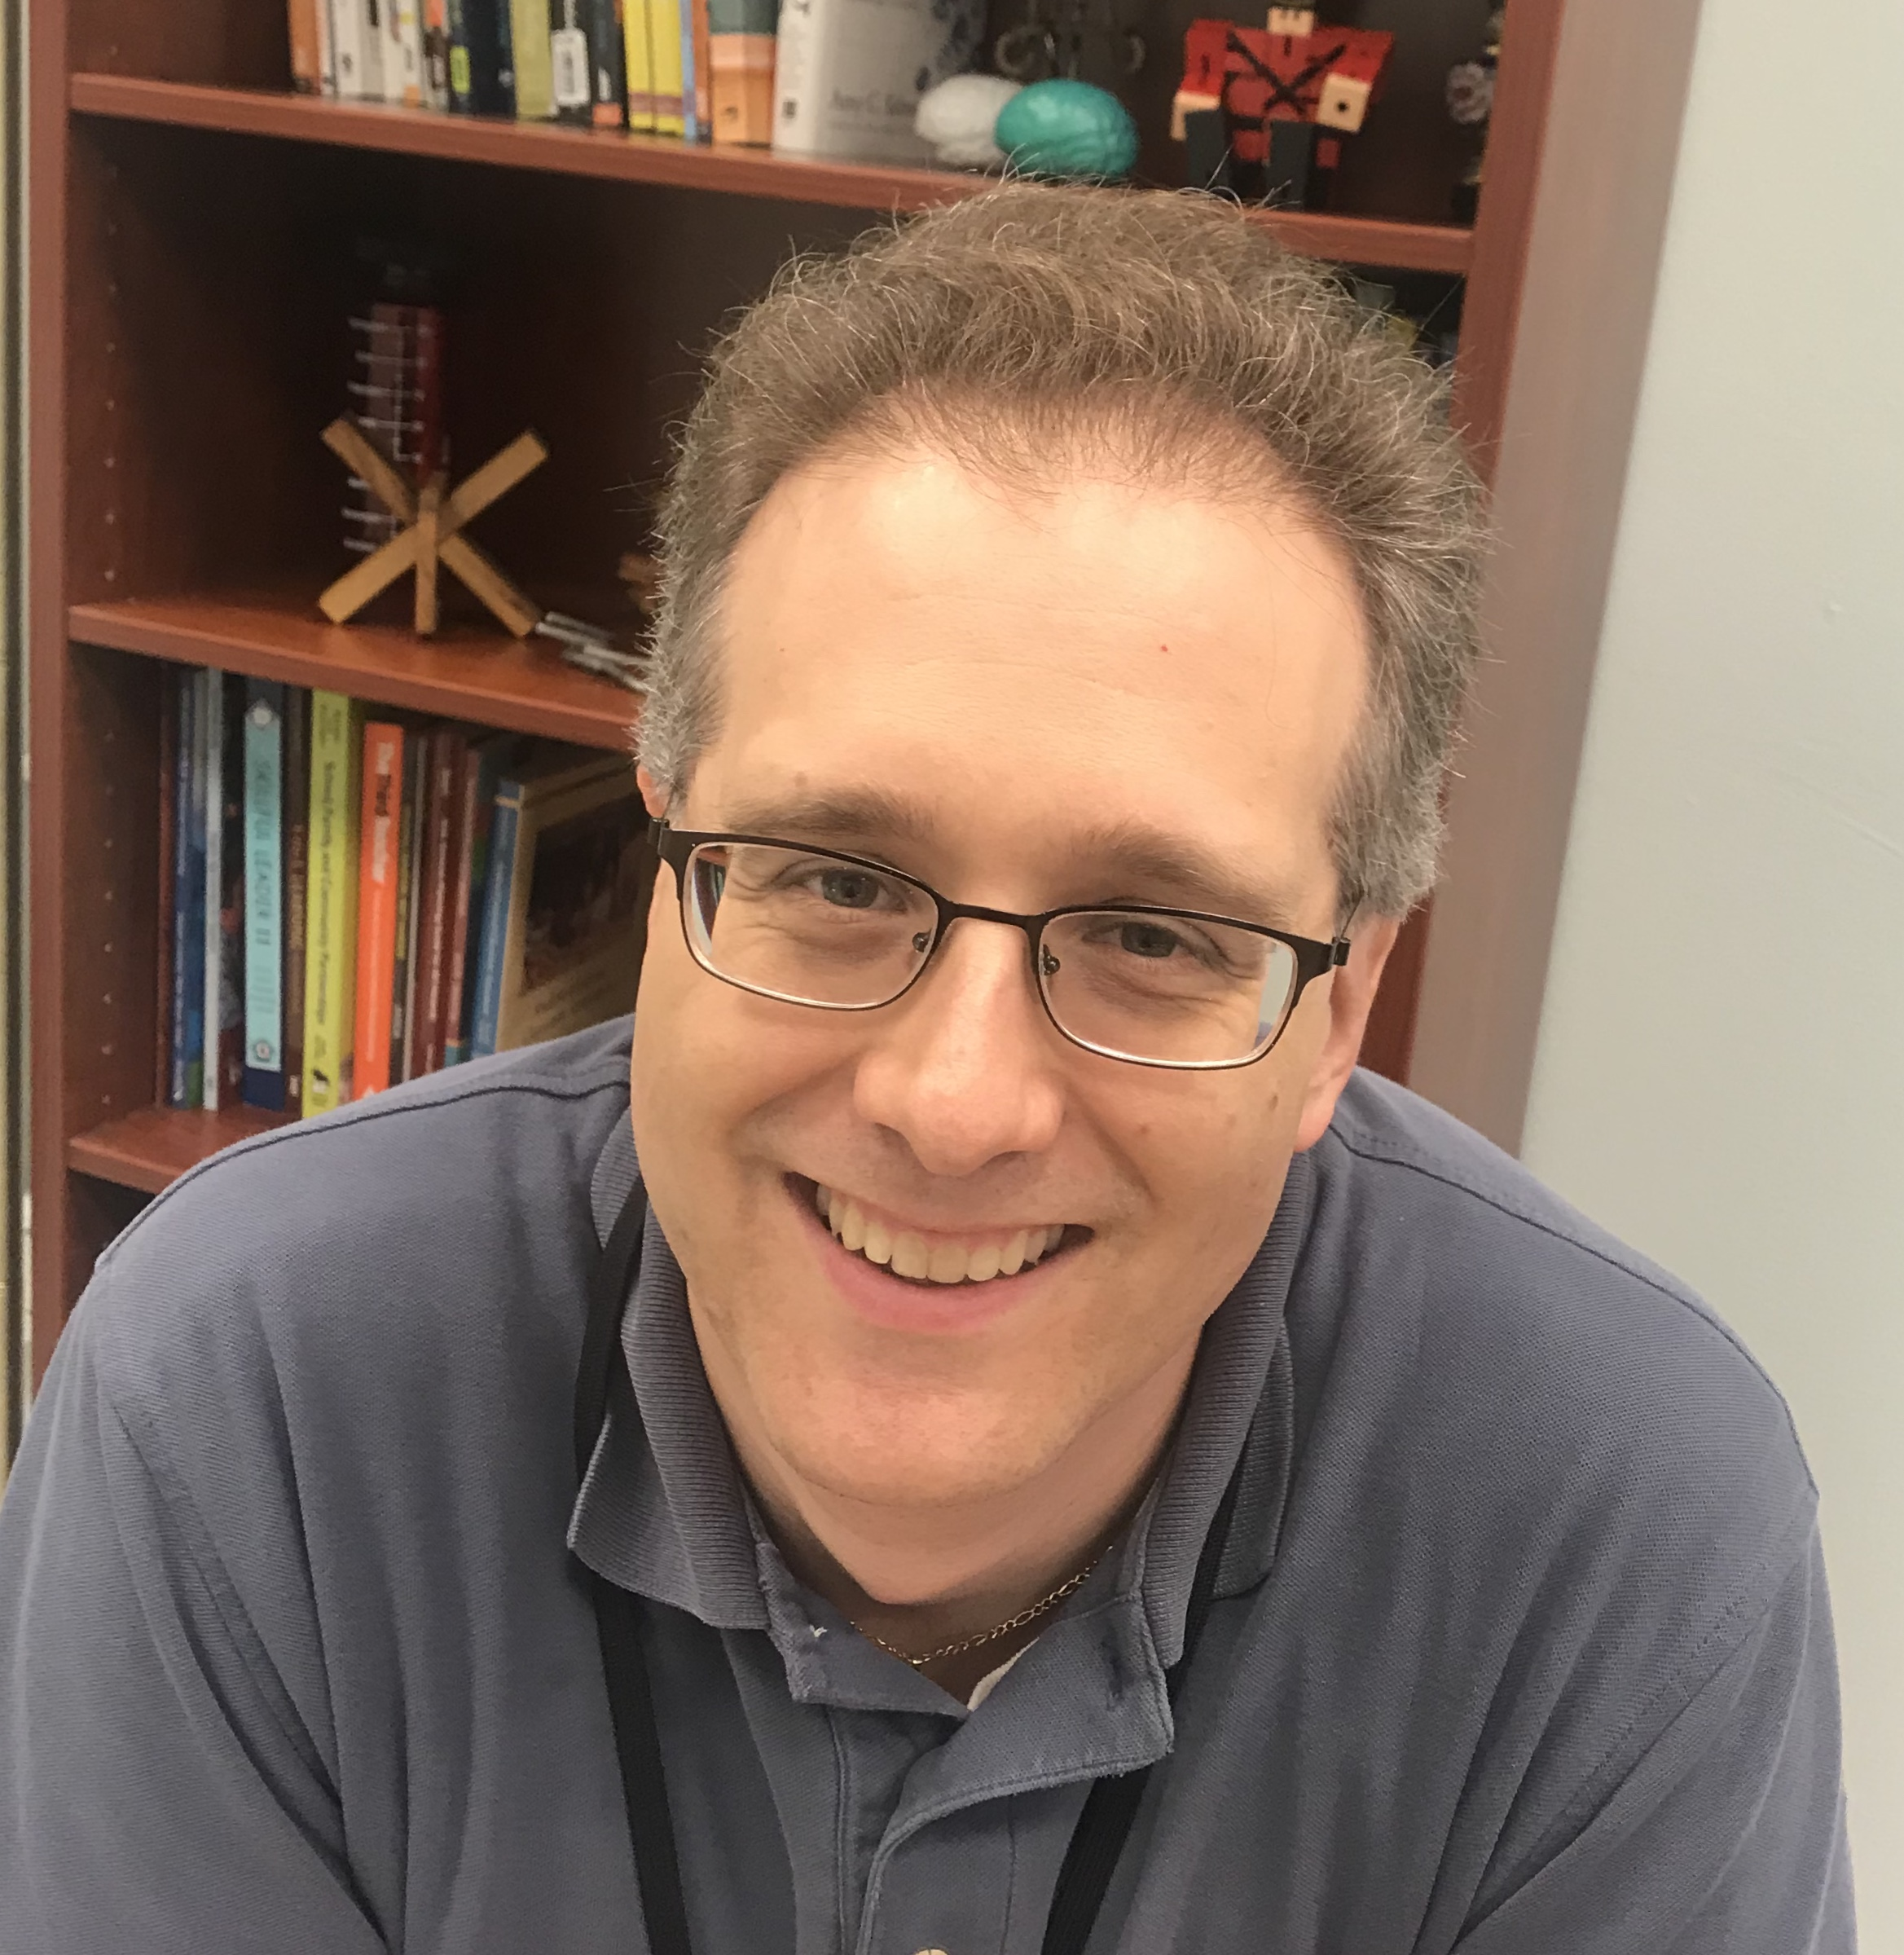 Steven rattendi interim director of informational technology and library services